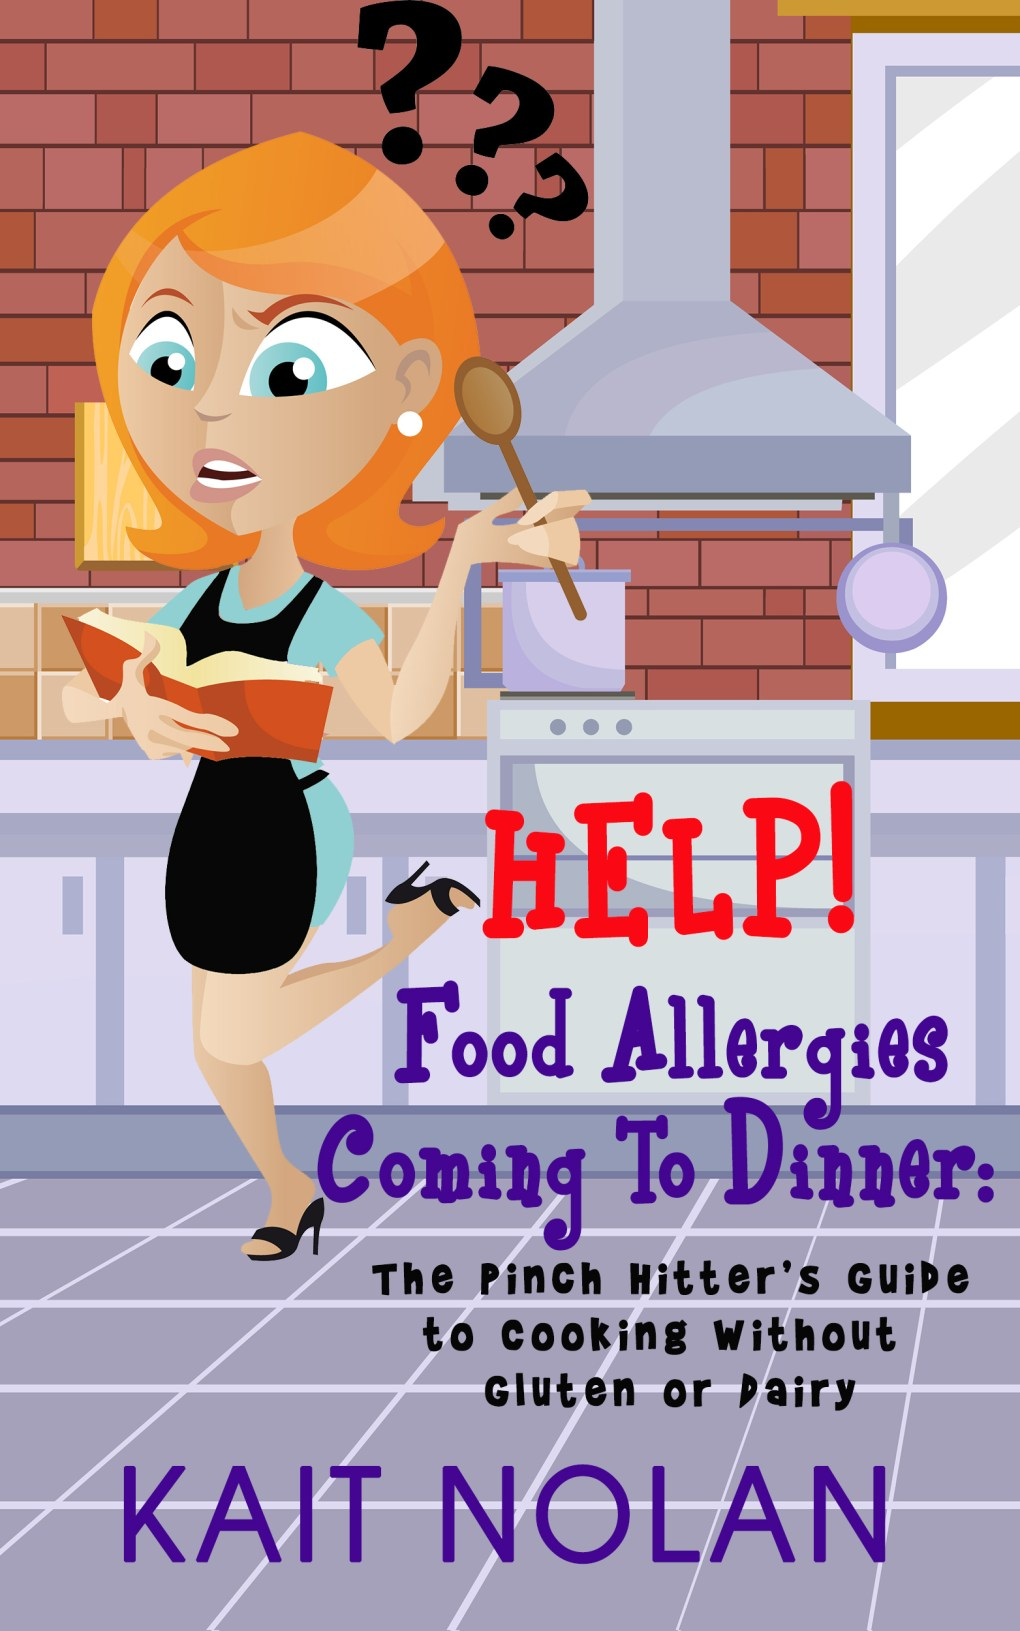 Book Cover: HELP! Food Allergies Coming To Dinner